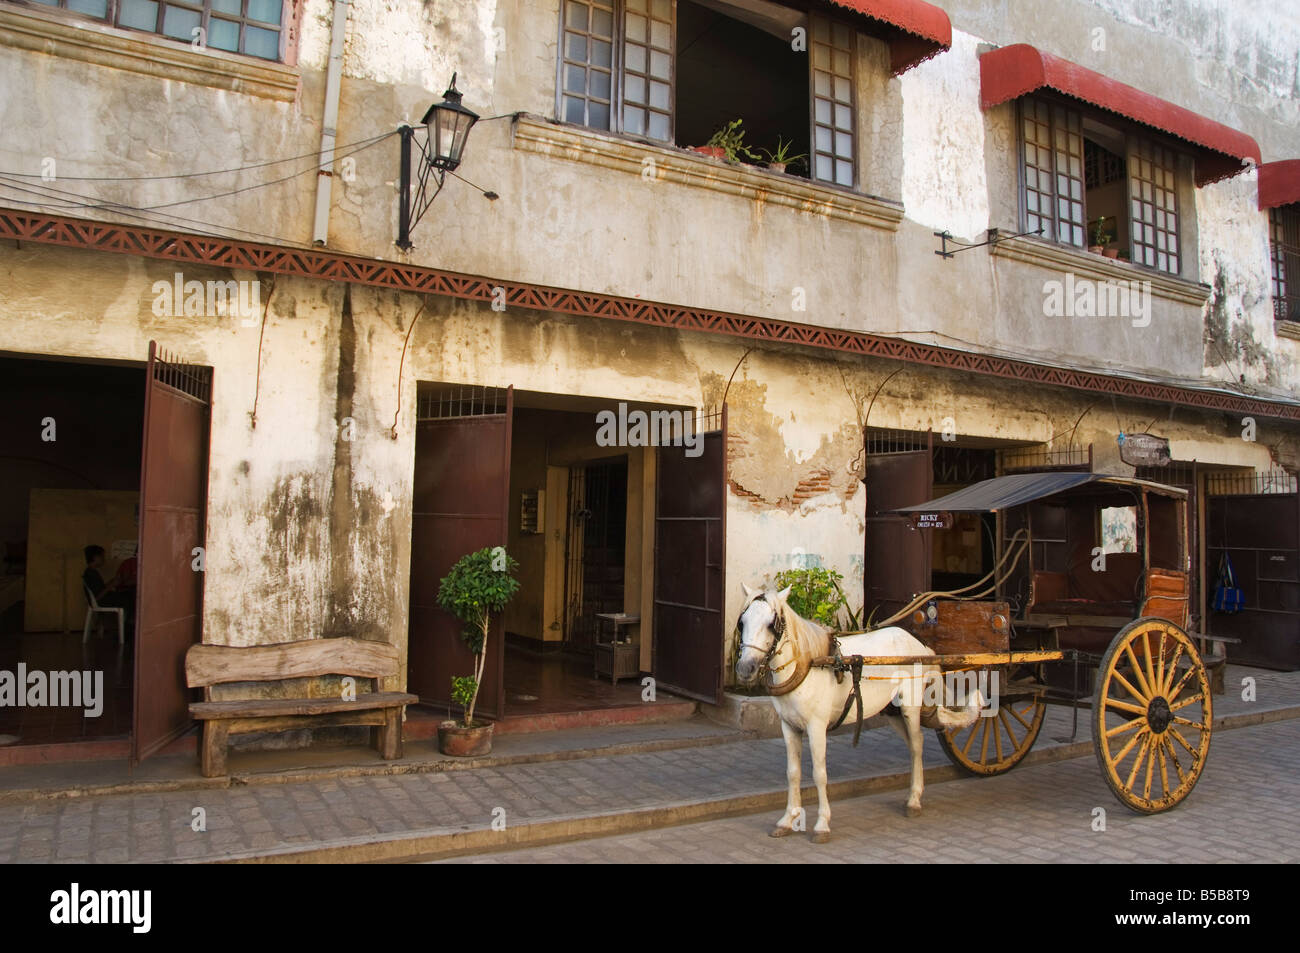 Horse and cart in Spanish Old Town, ancestral homes and colonial era mansions, Vigan, Ilocos Province, Luzon, Philippines - Stock Image